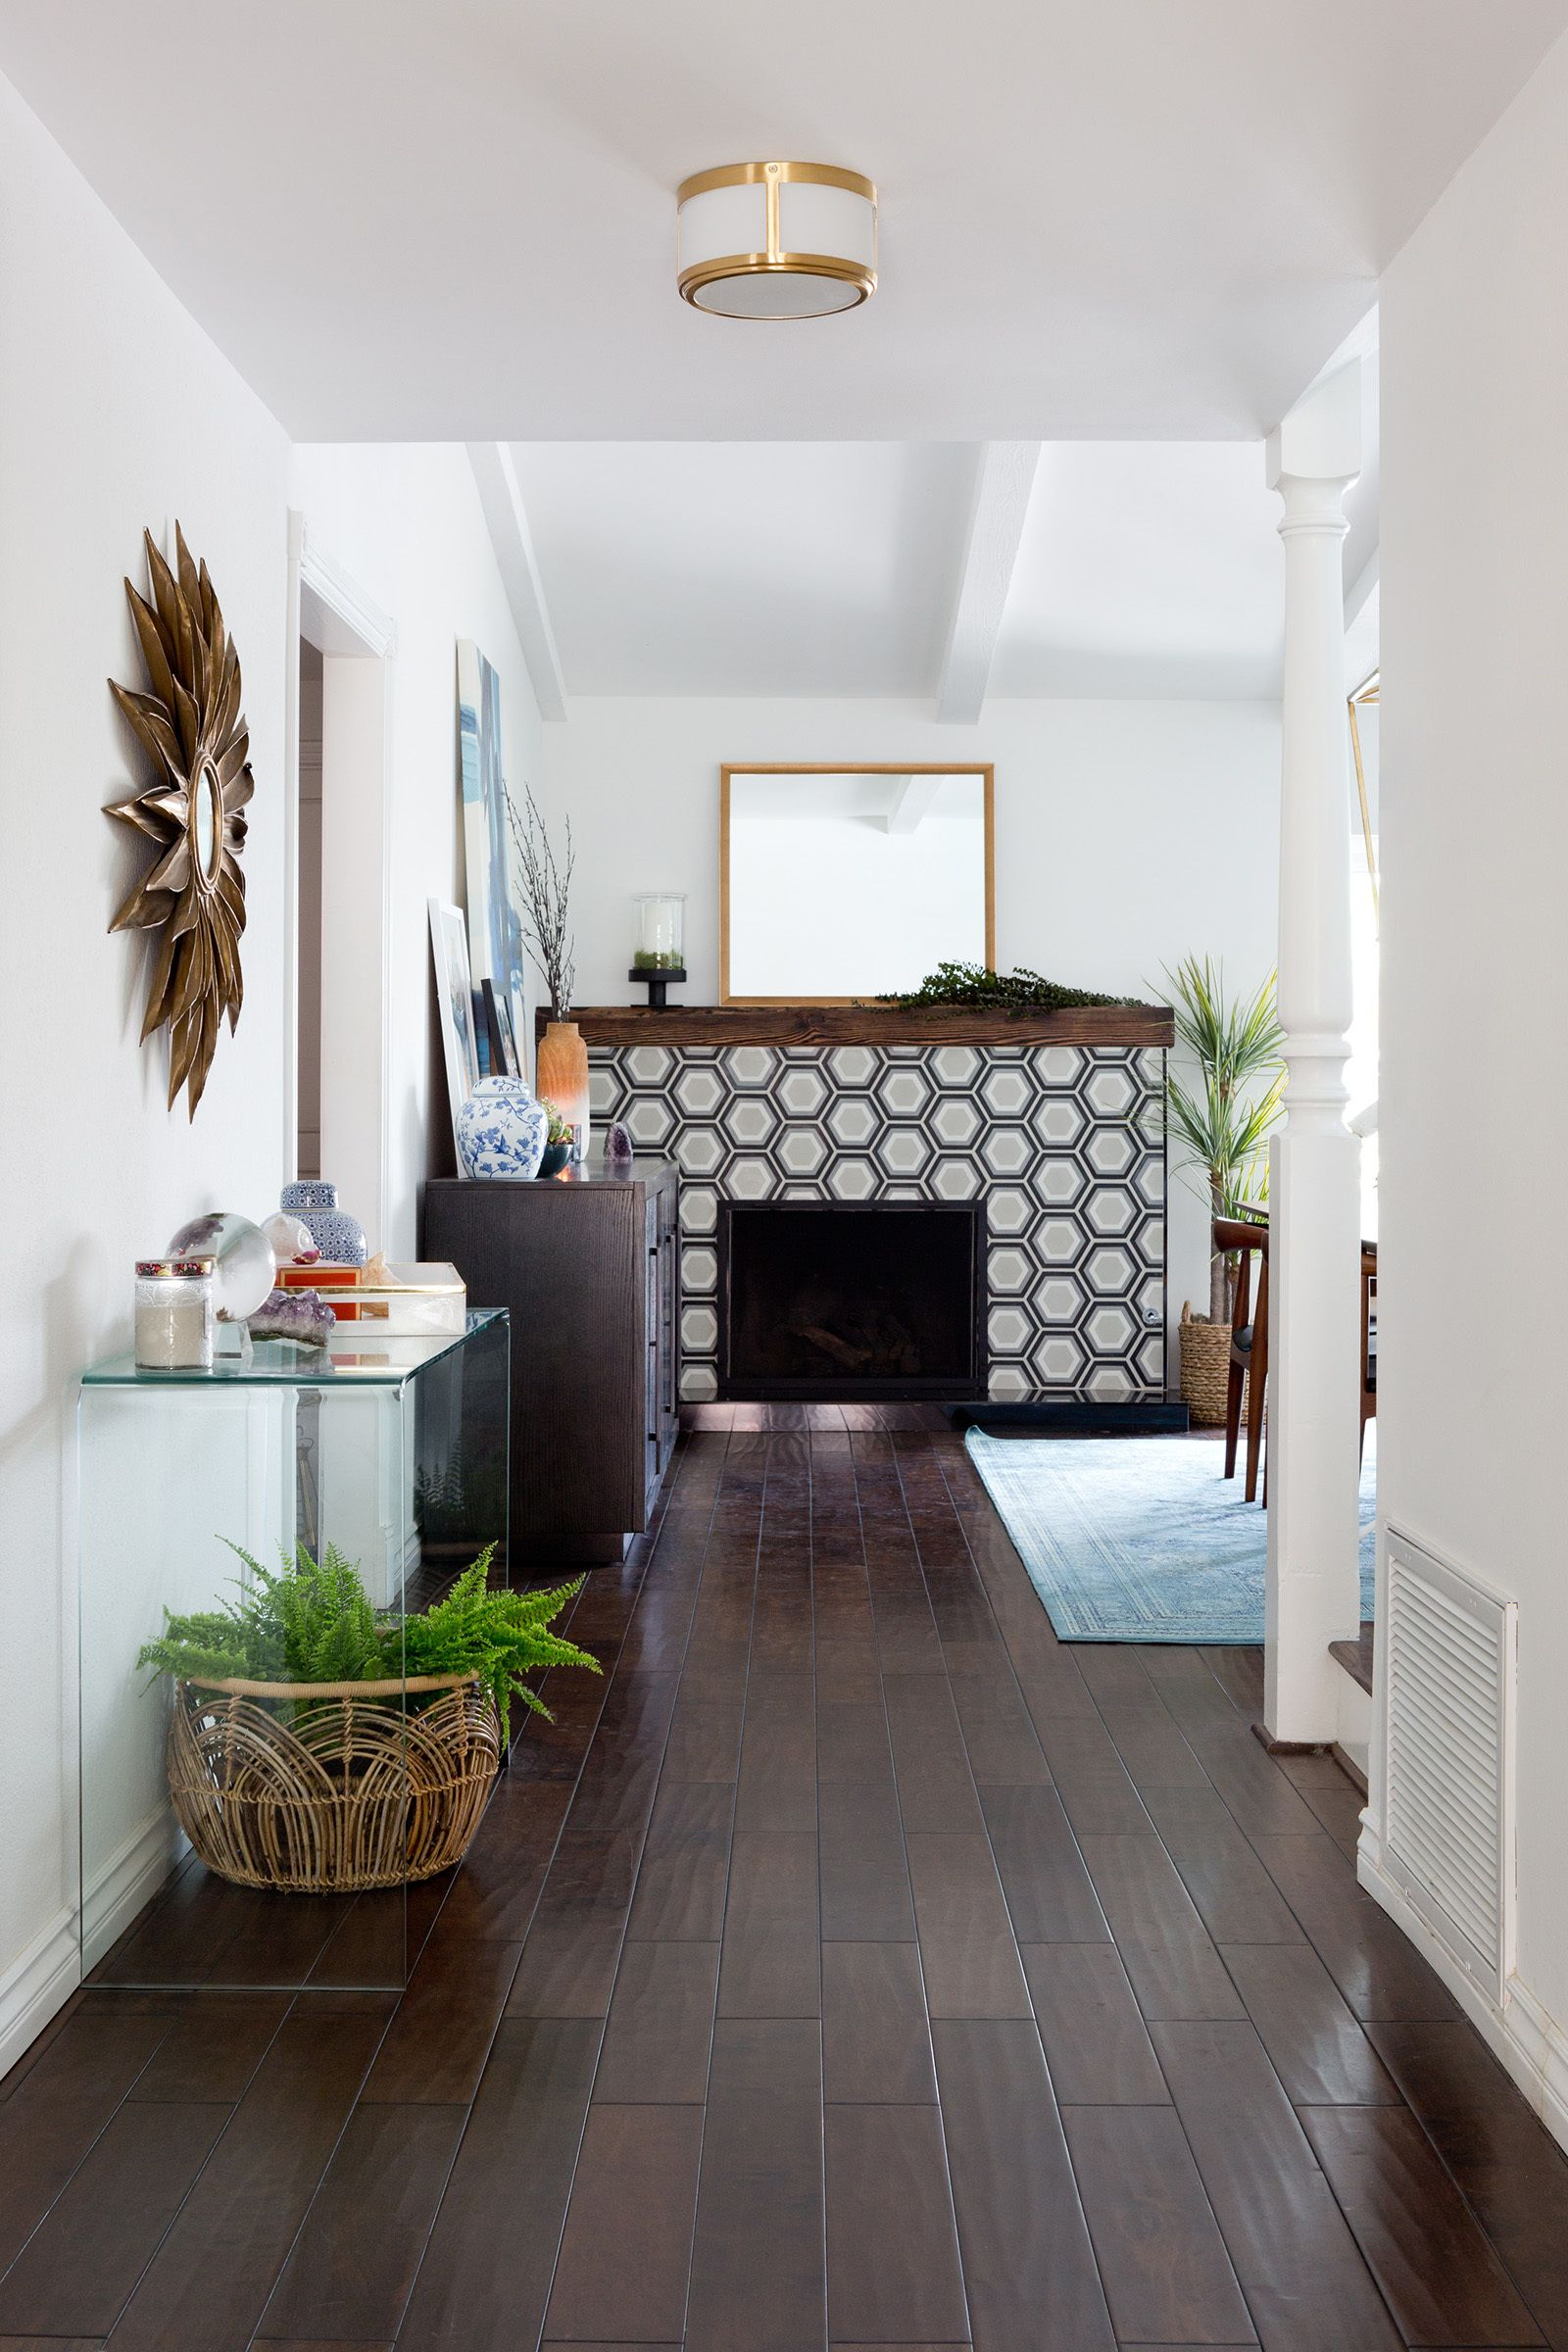 Tour a home with midcentury bones and a healthy dose of glam mid